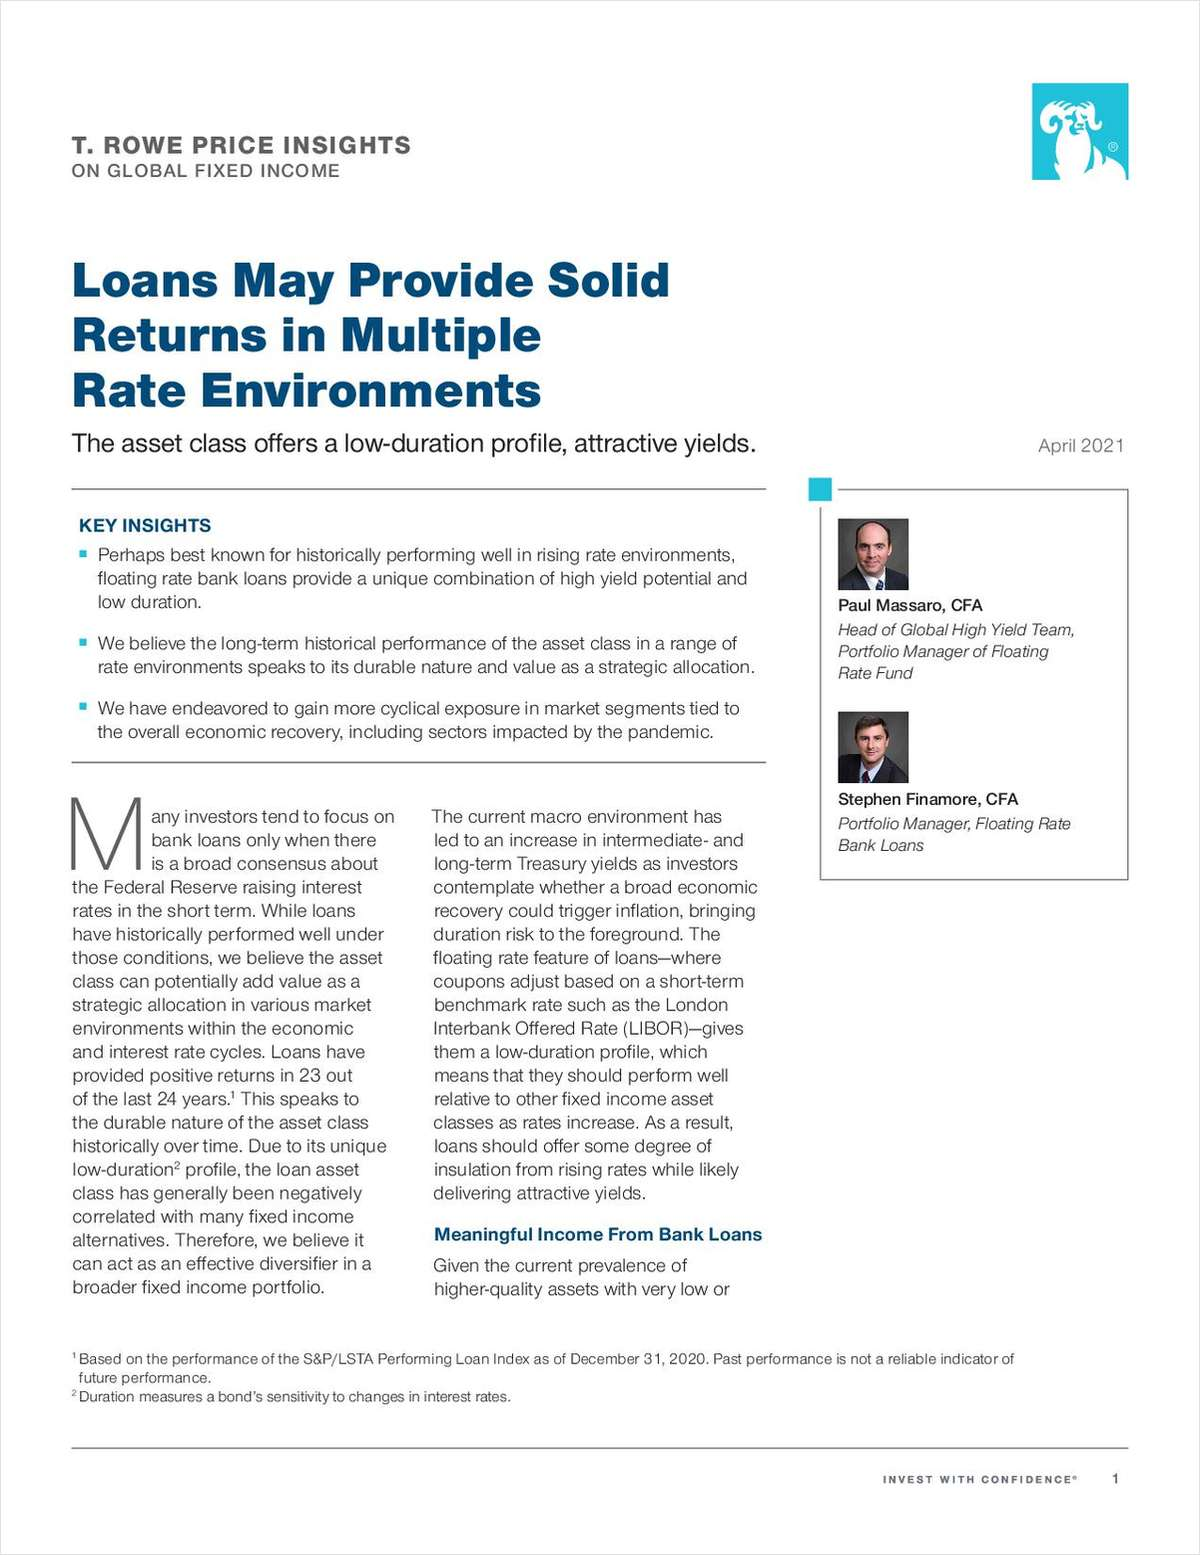 Loans May Provide Solid Returns in Multiple Rate Environments